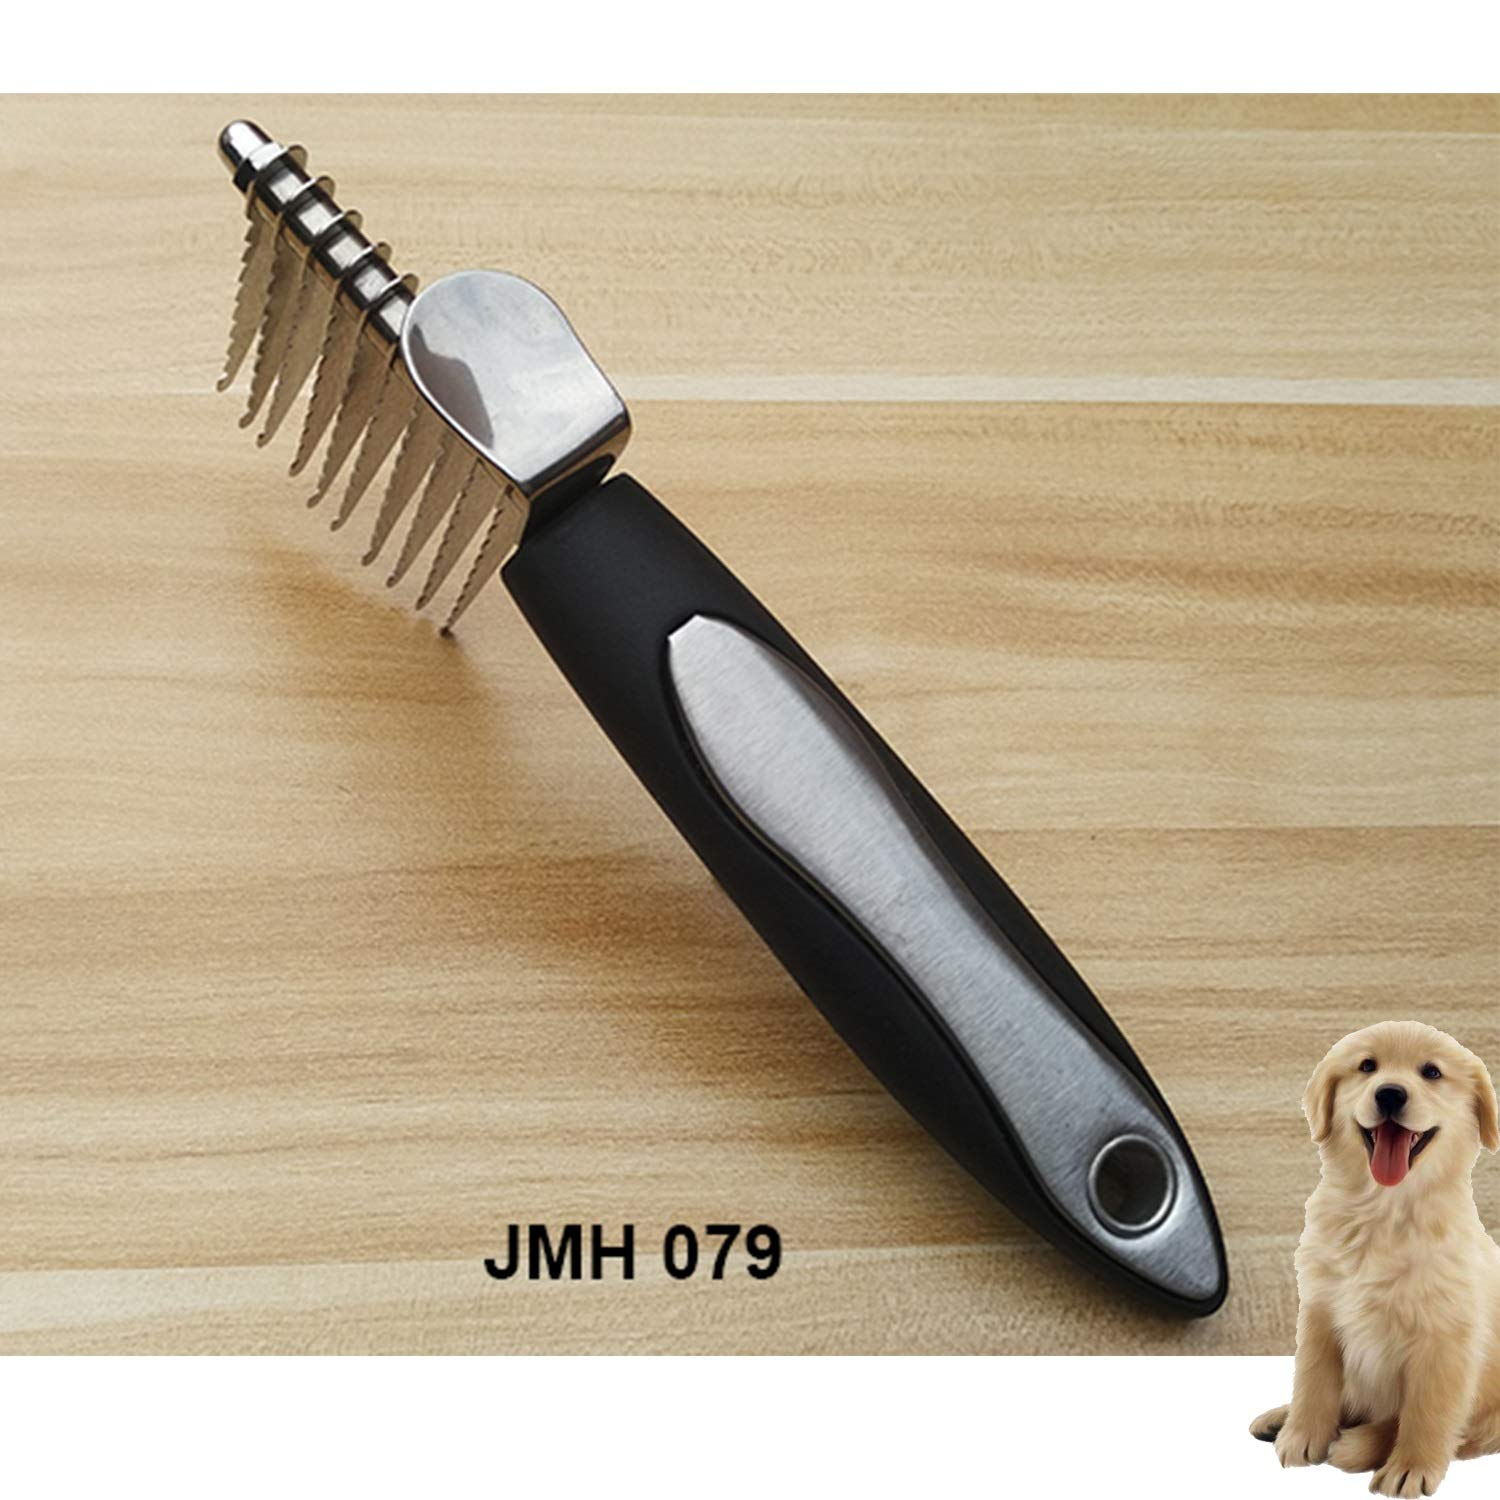 RT Horses, Rabbits, Longhaired Cats, Dependable Grooming Appurtenance for Dogs, Poodle Pet Dematting Fur Rake Comb Brush Tool Detangling Matt or Knotty Undercoat Hair